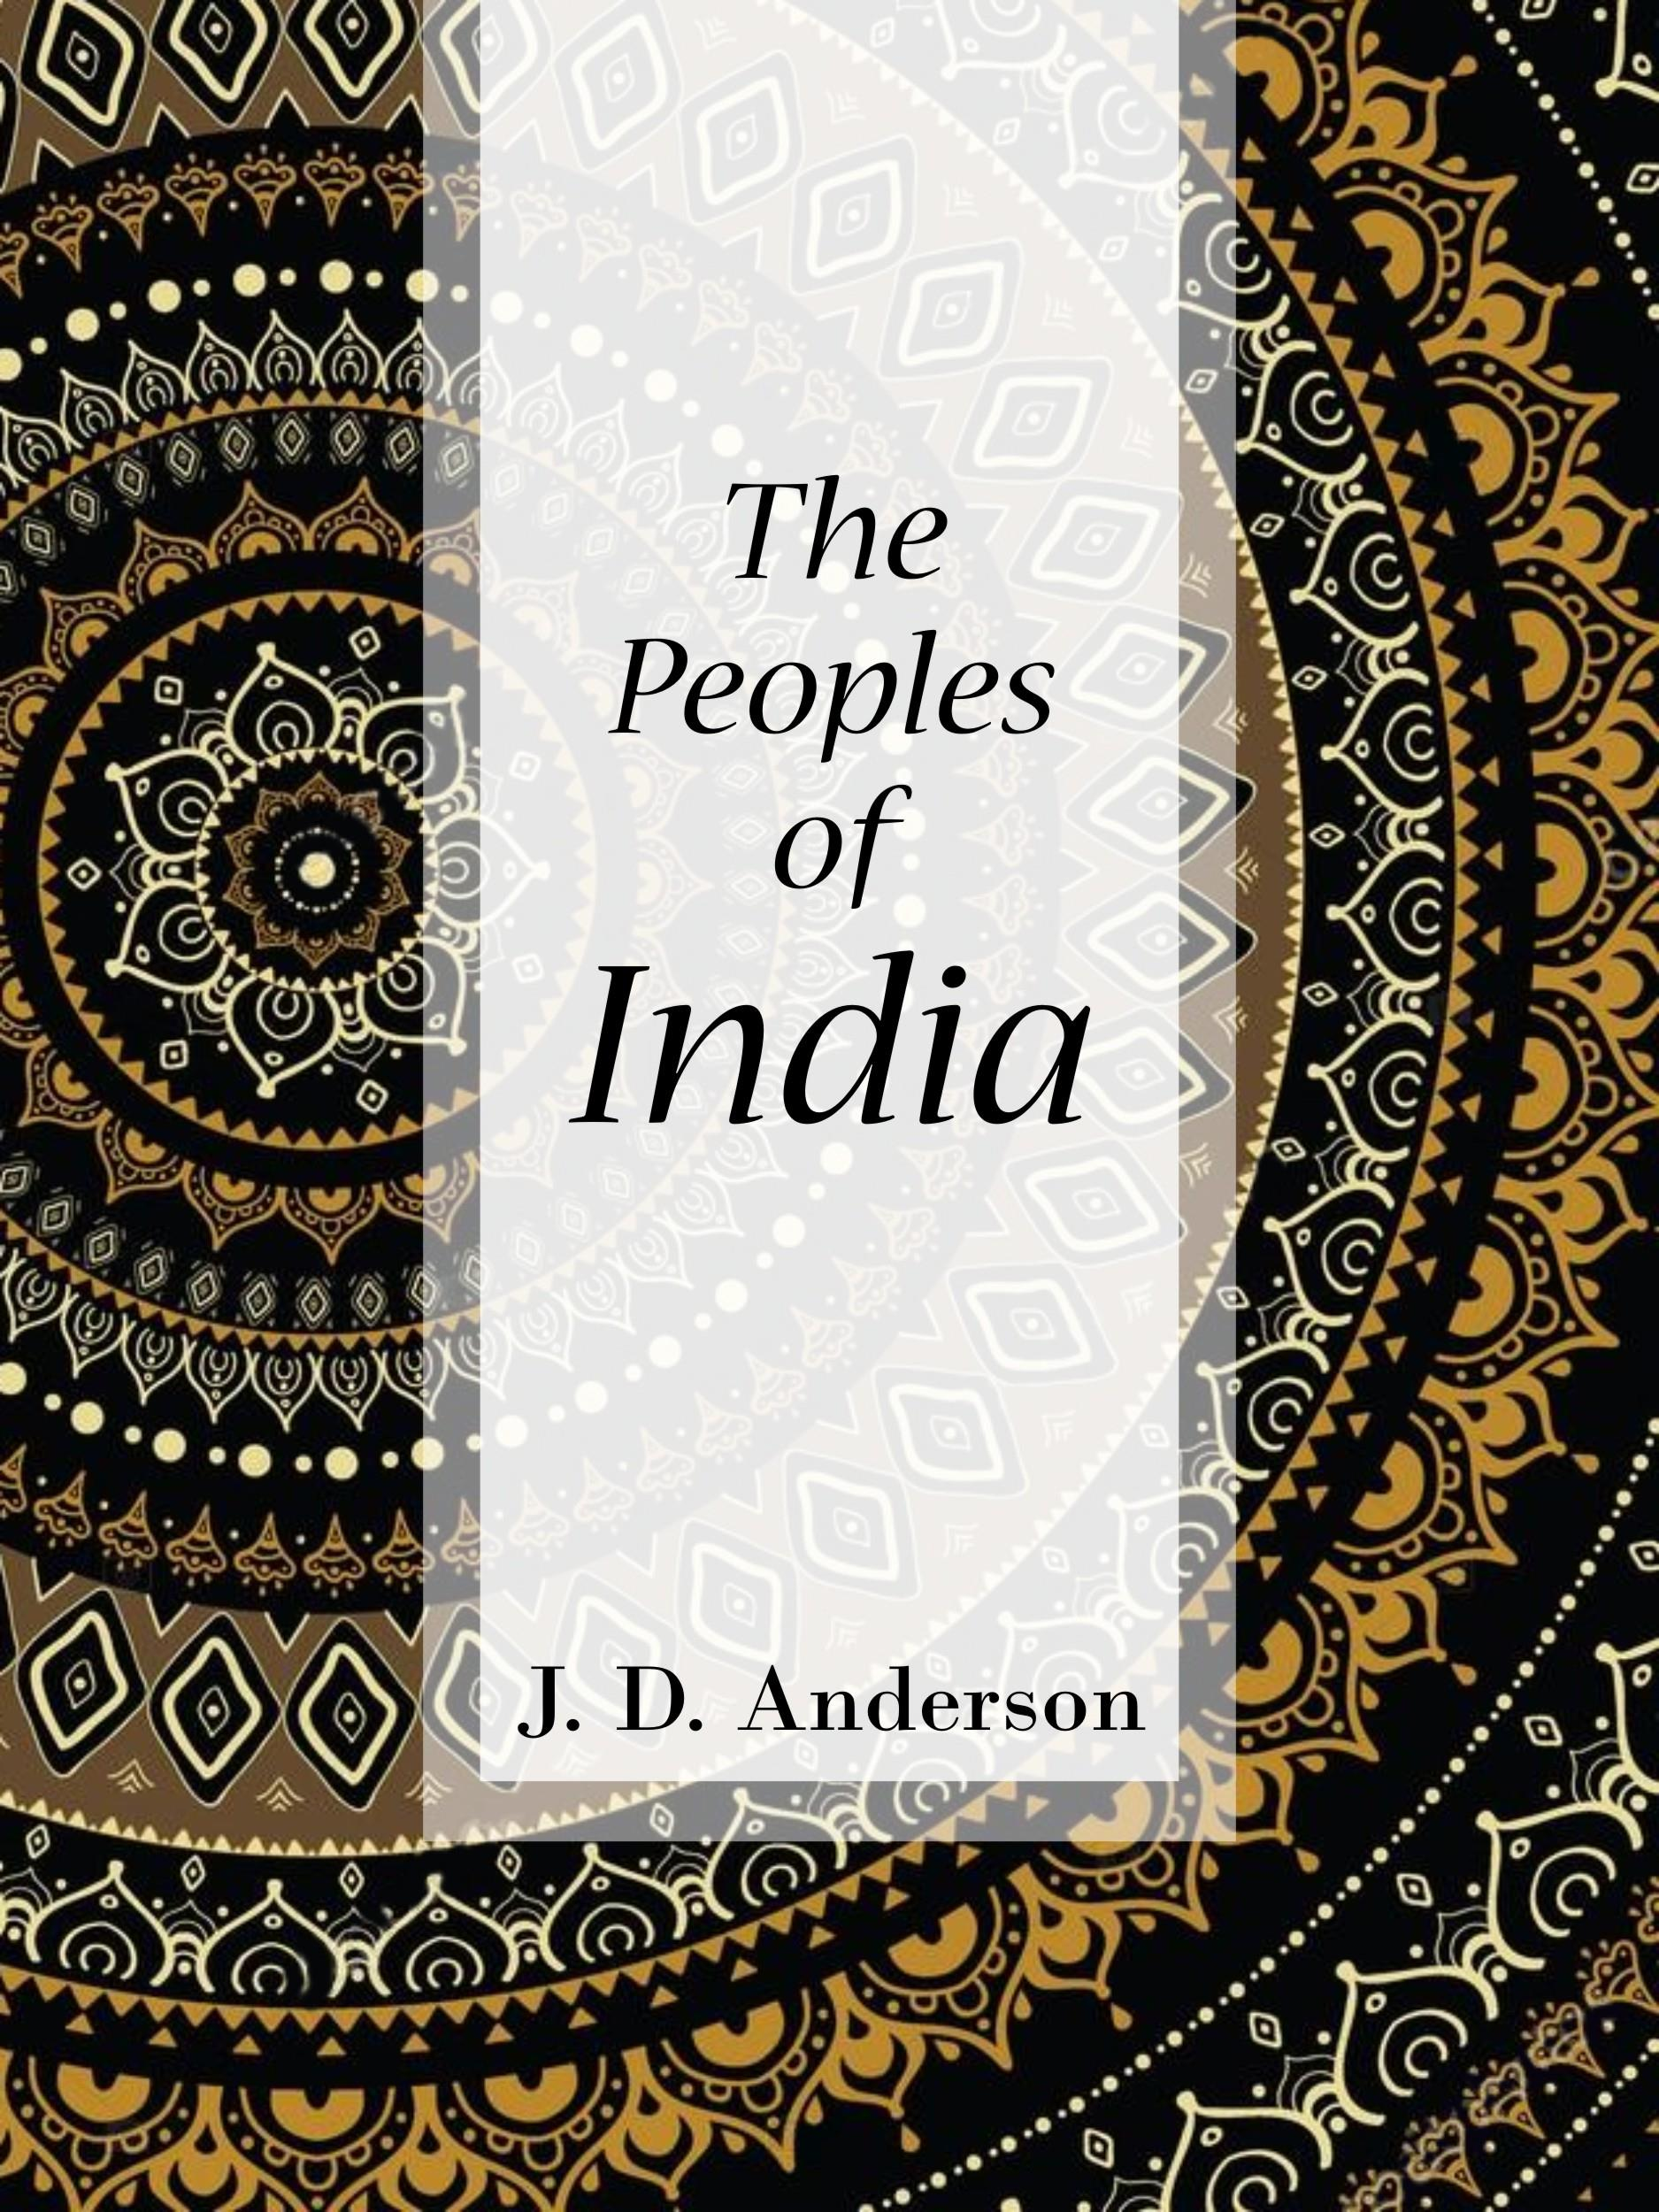 The Peoples of India